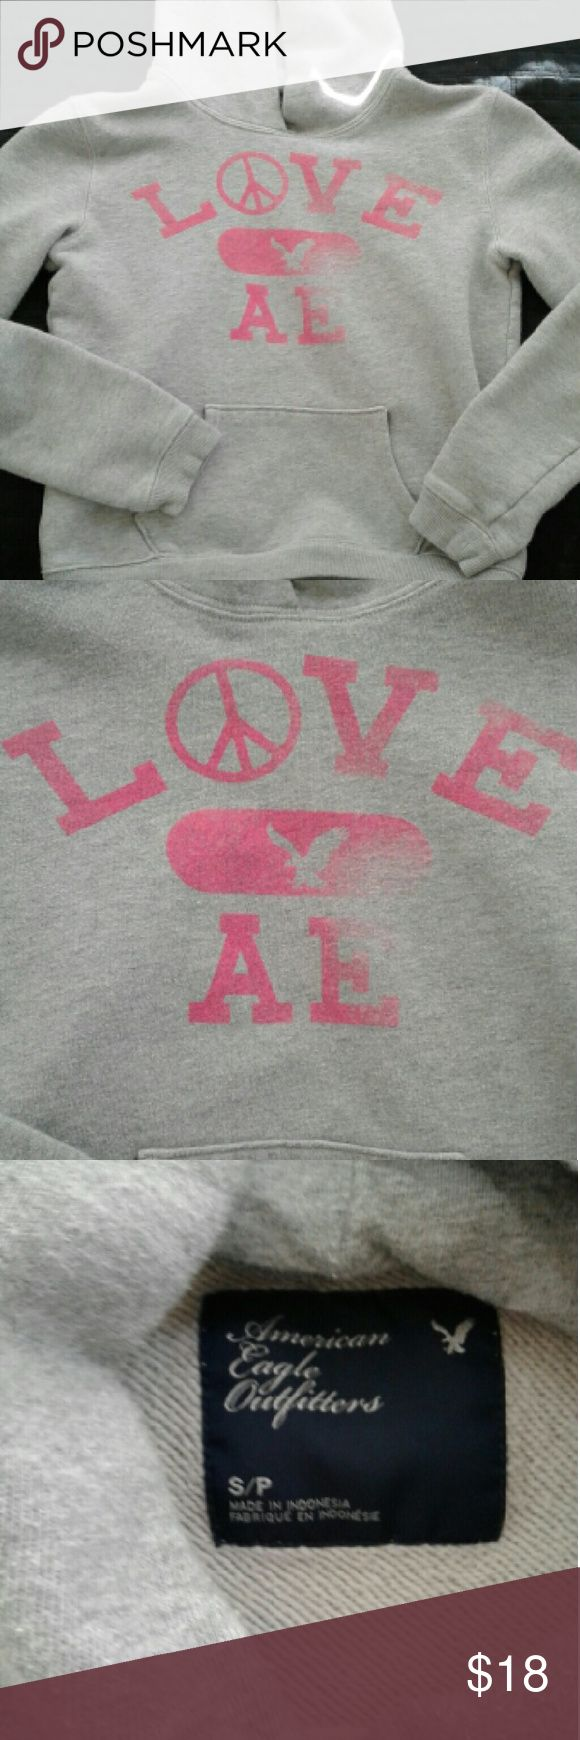 American Eagle hoodie American Eagle hoodie with pink writing on the front. Comfortable and cozy terry cloth inside. American Eagle Outfitters Tops Sweatshirts & Hoodies